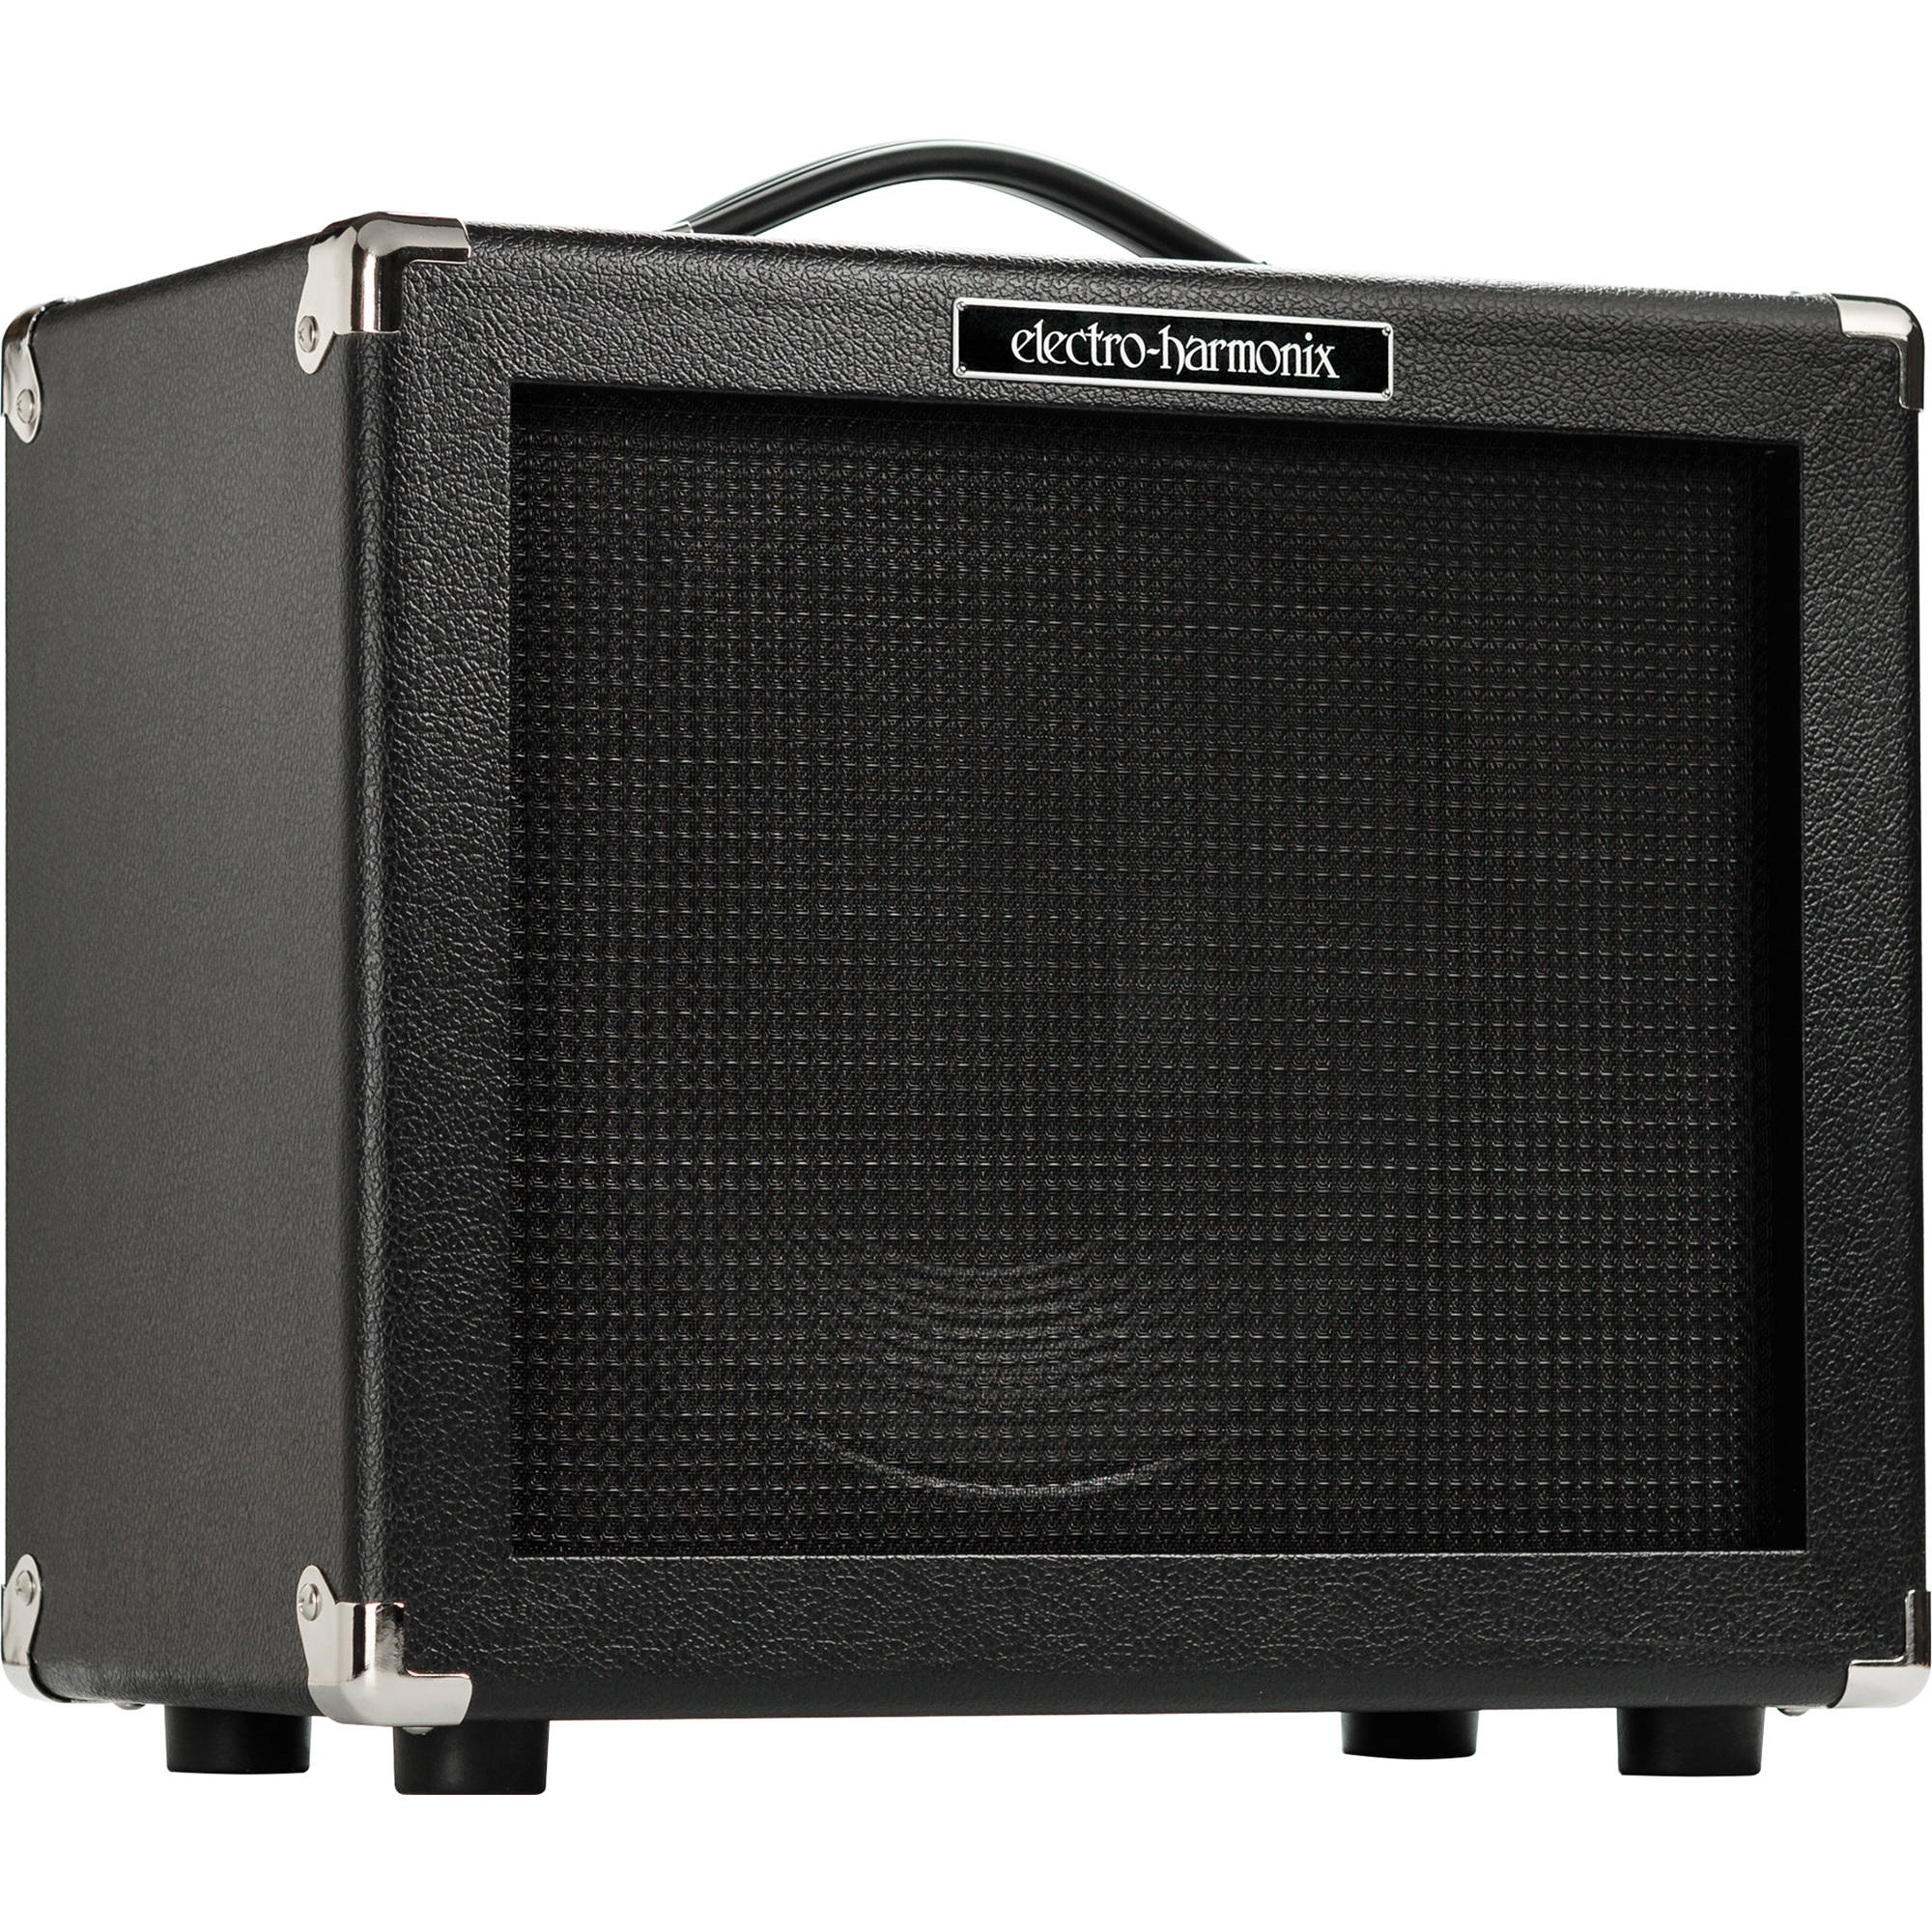 """Electro-Harmonix Dirt Road Special 40W 12"""" Combo Amp with Built-In Holy Grail Reverb"""